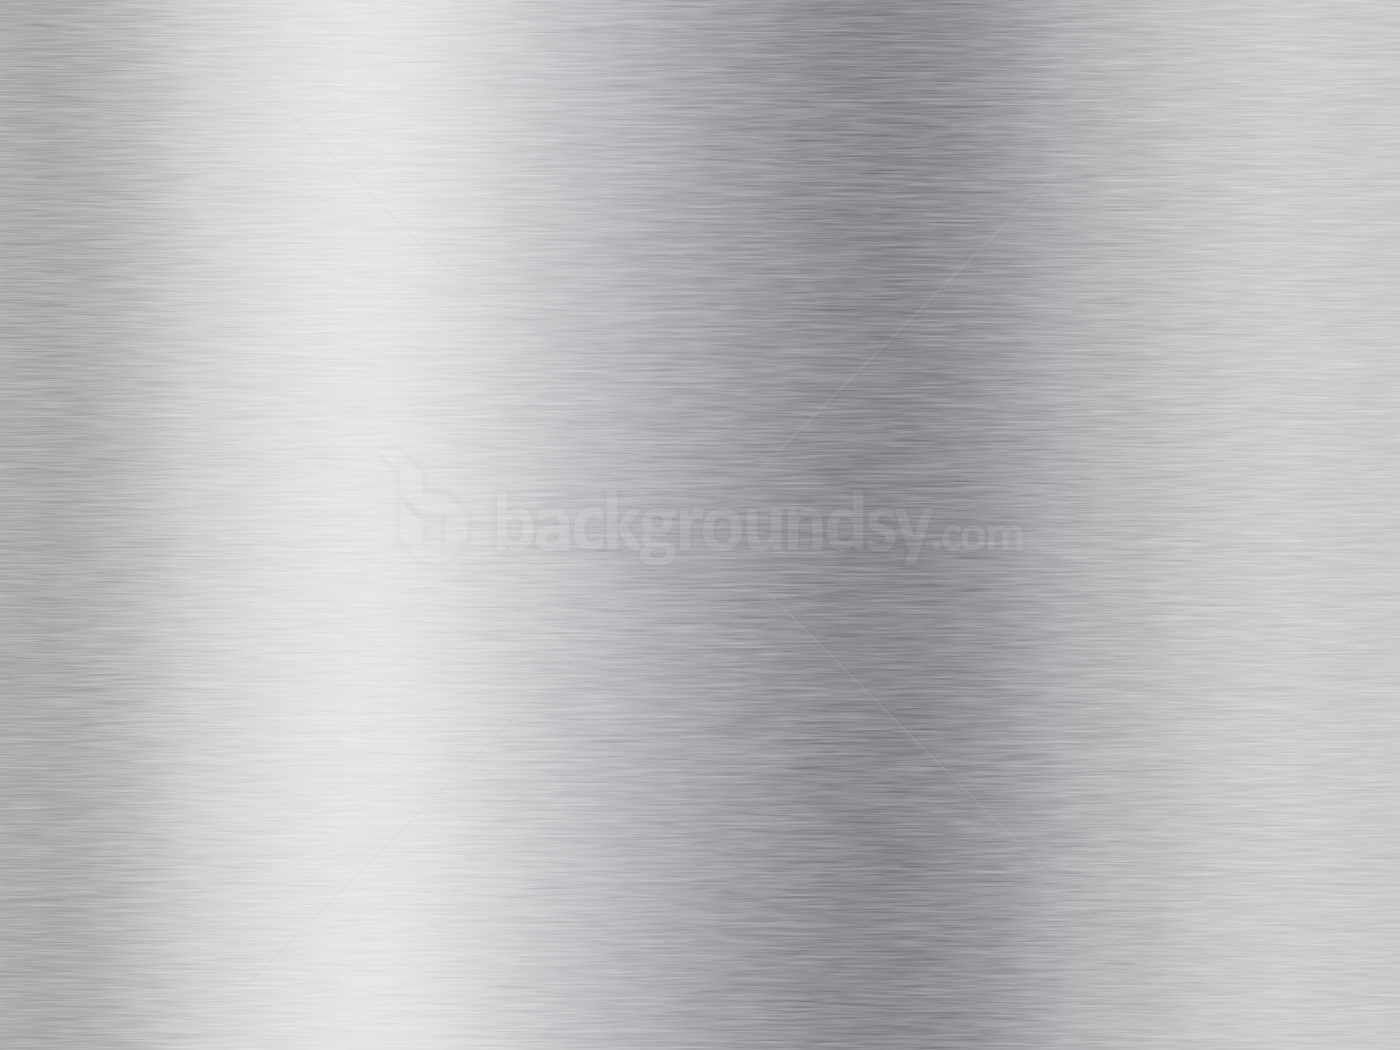 Terms Of Use >> Stainless steel texture | Backgroundsy.com